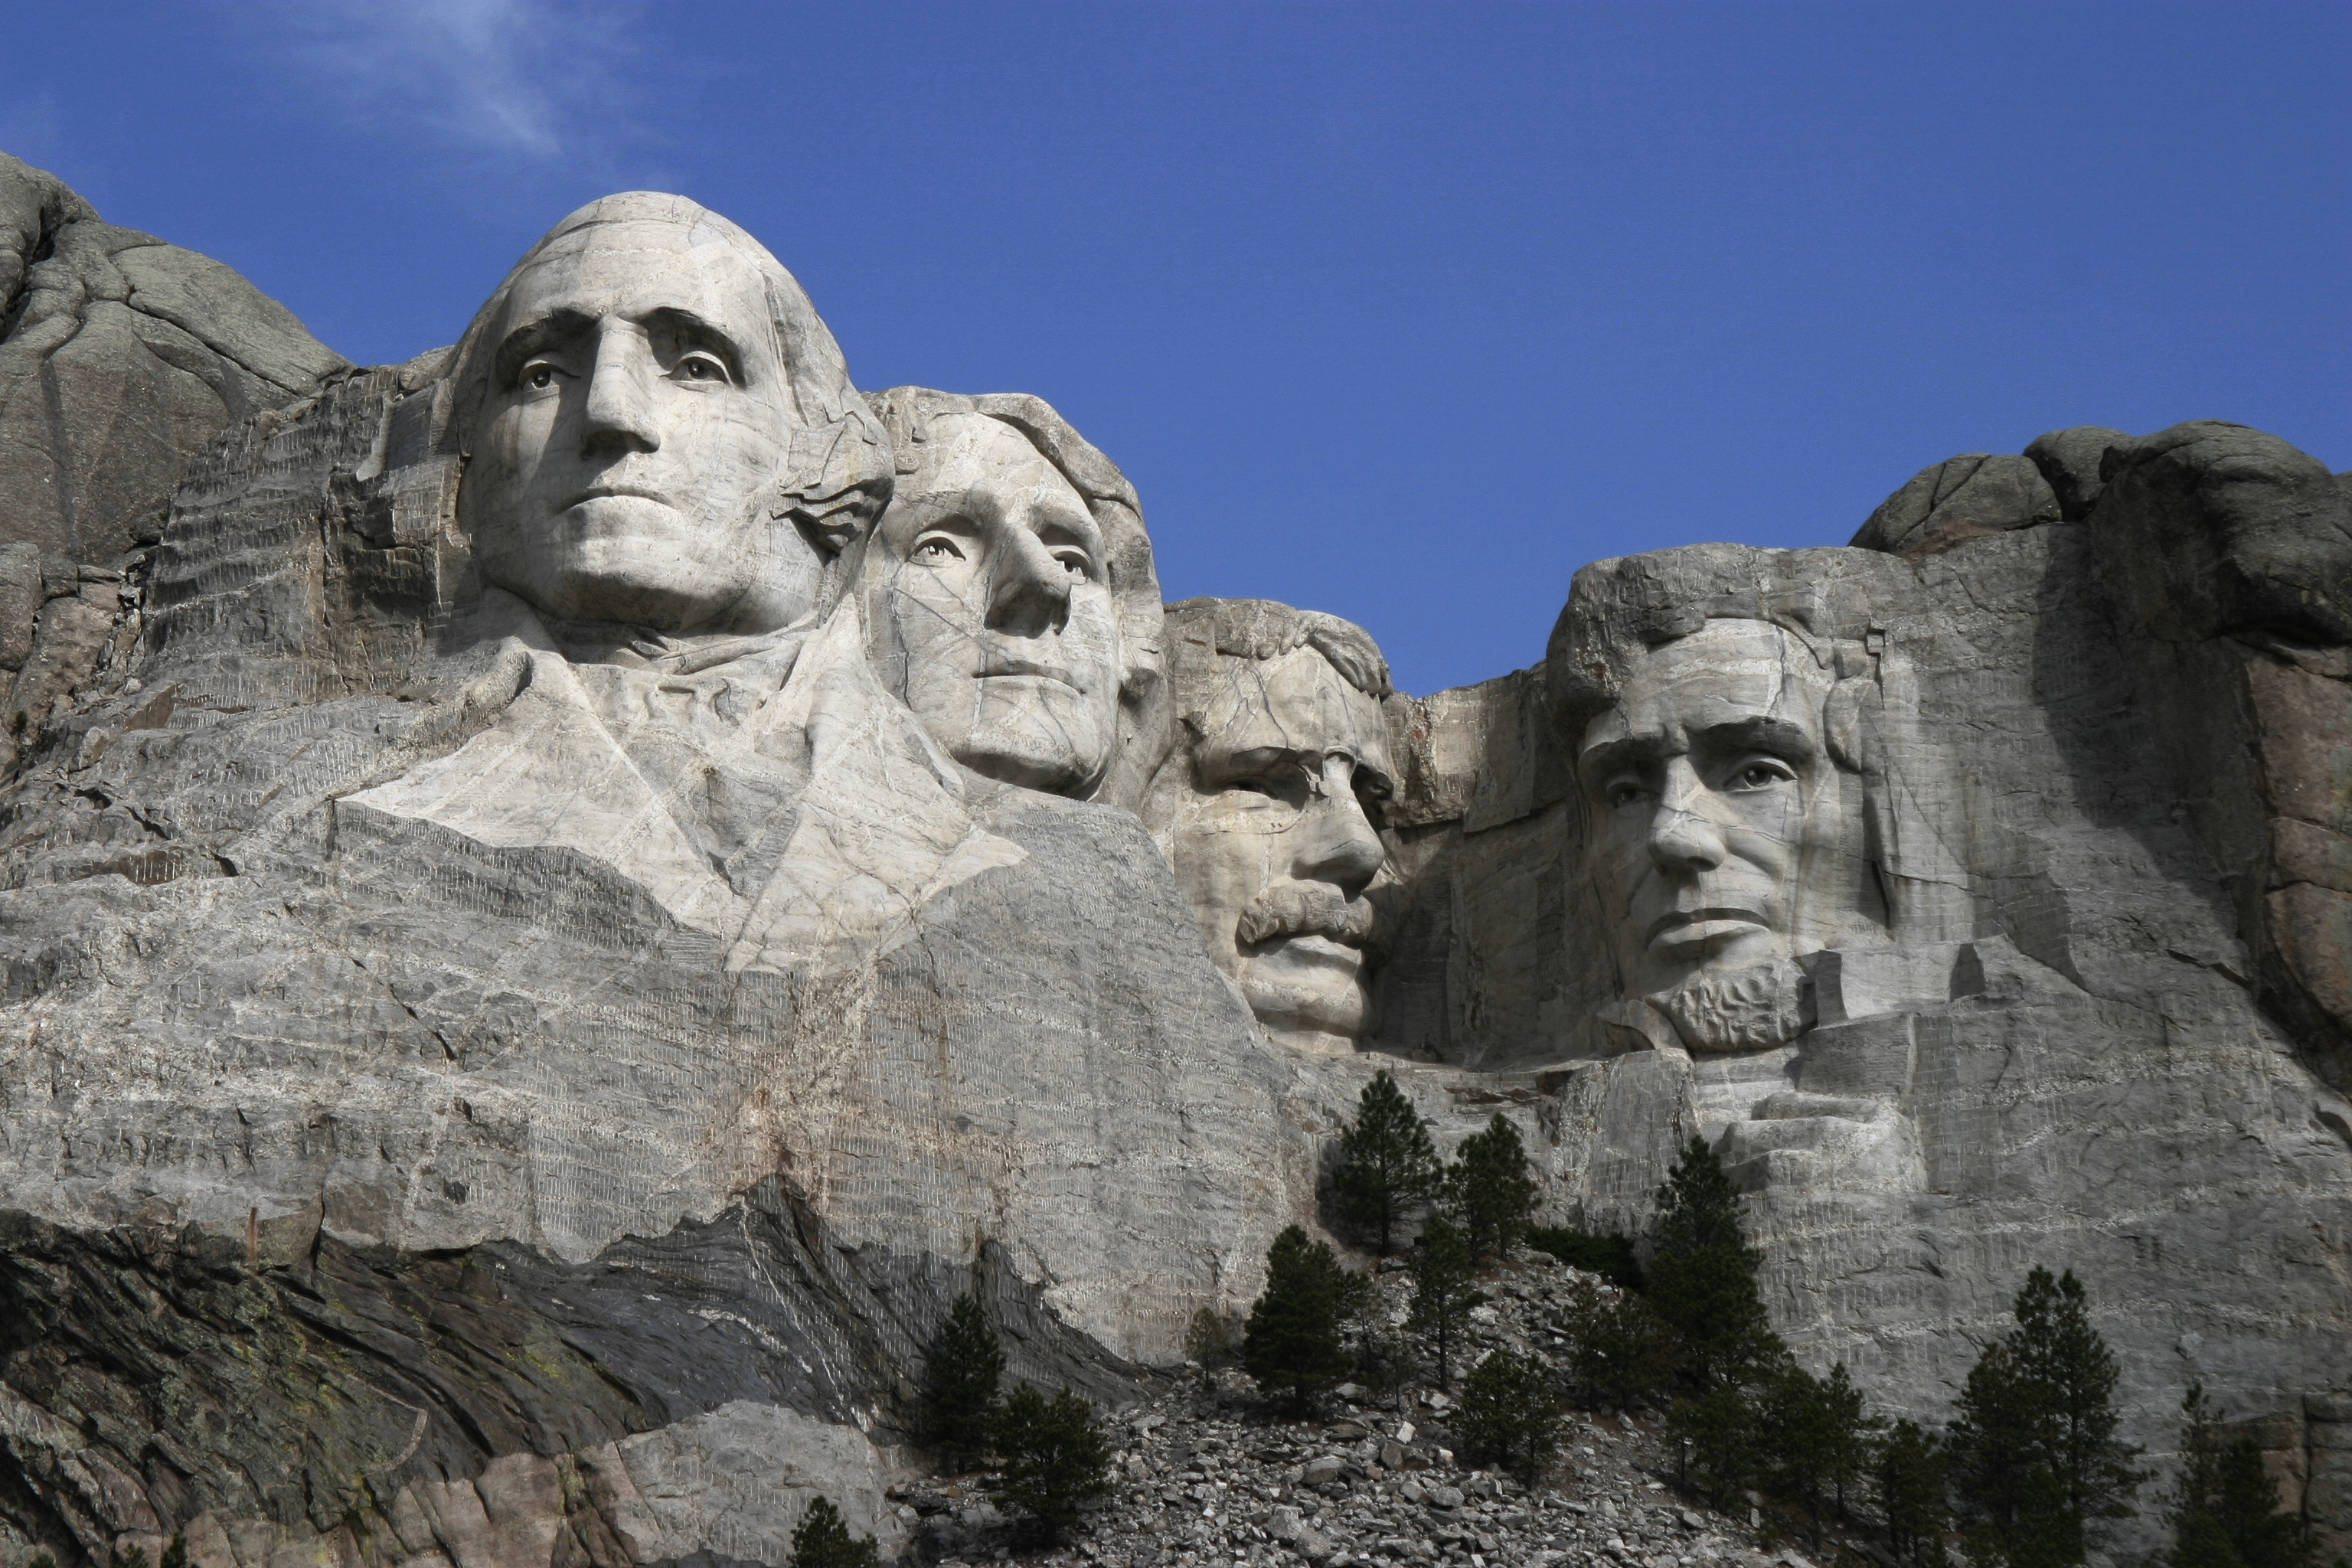 Worksheet Building Mount Rushmore mount rushmore wikipedia rushmore